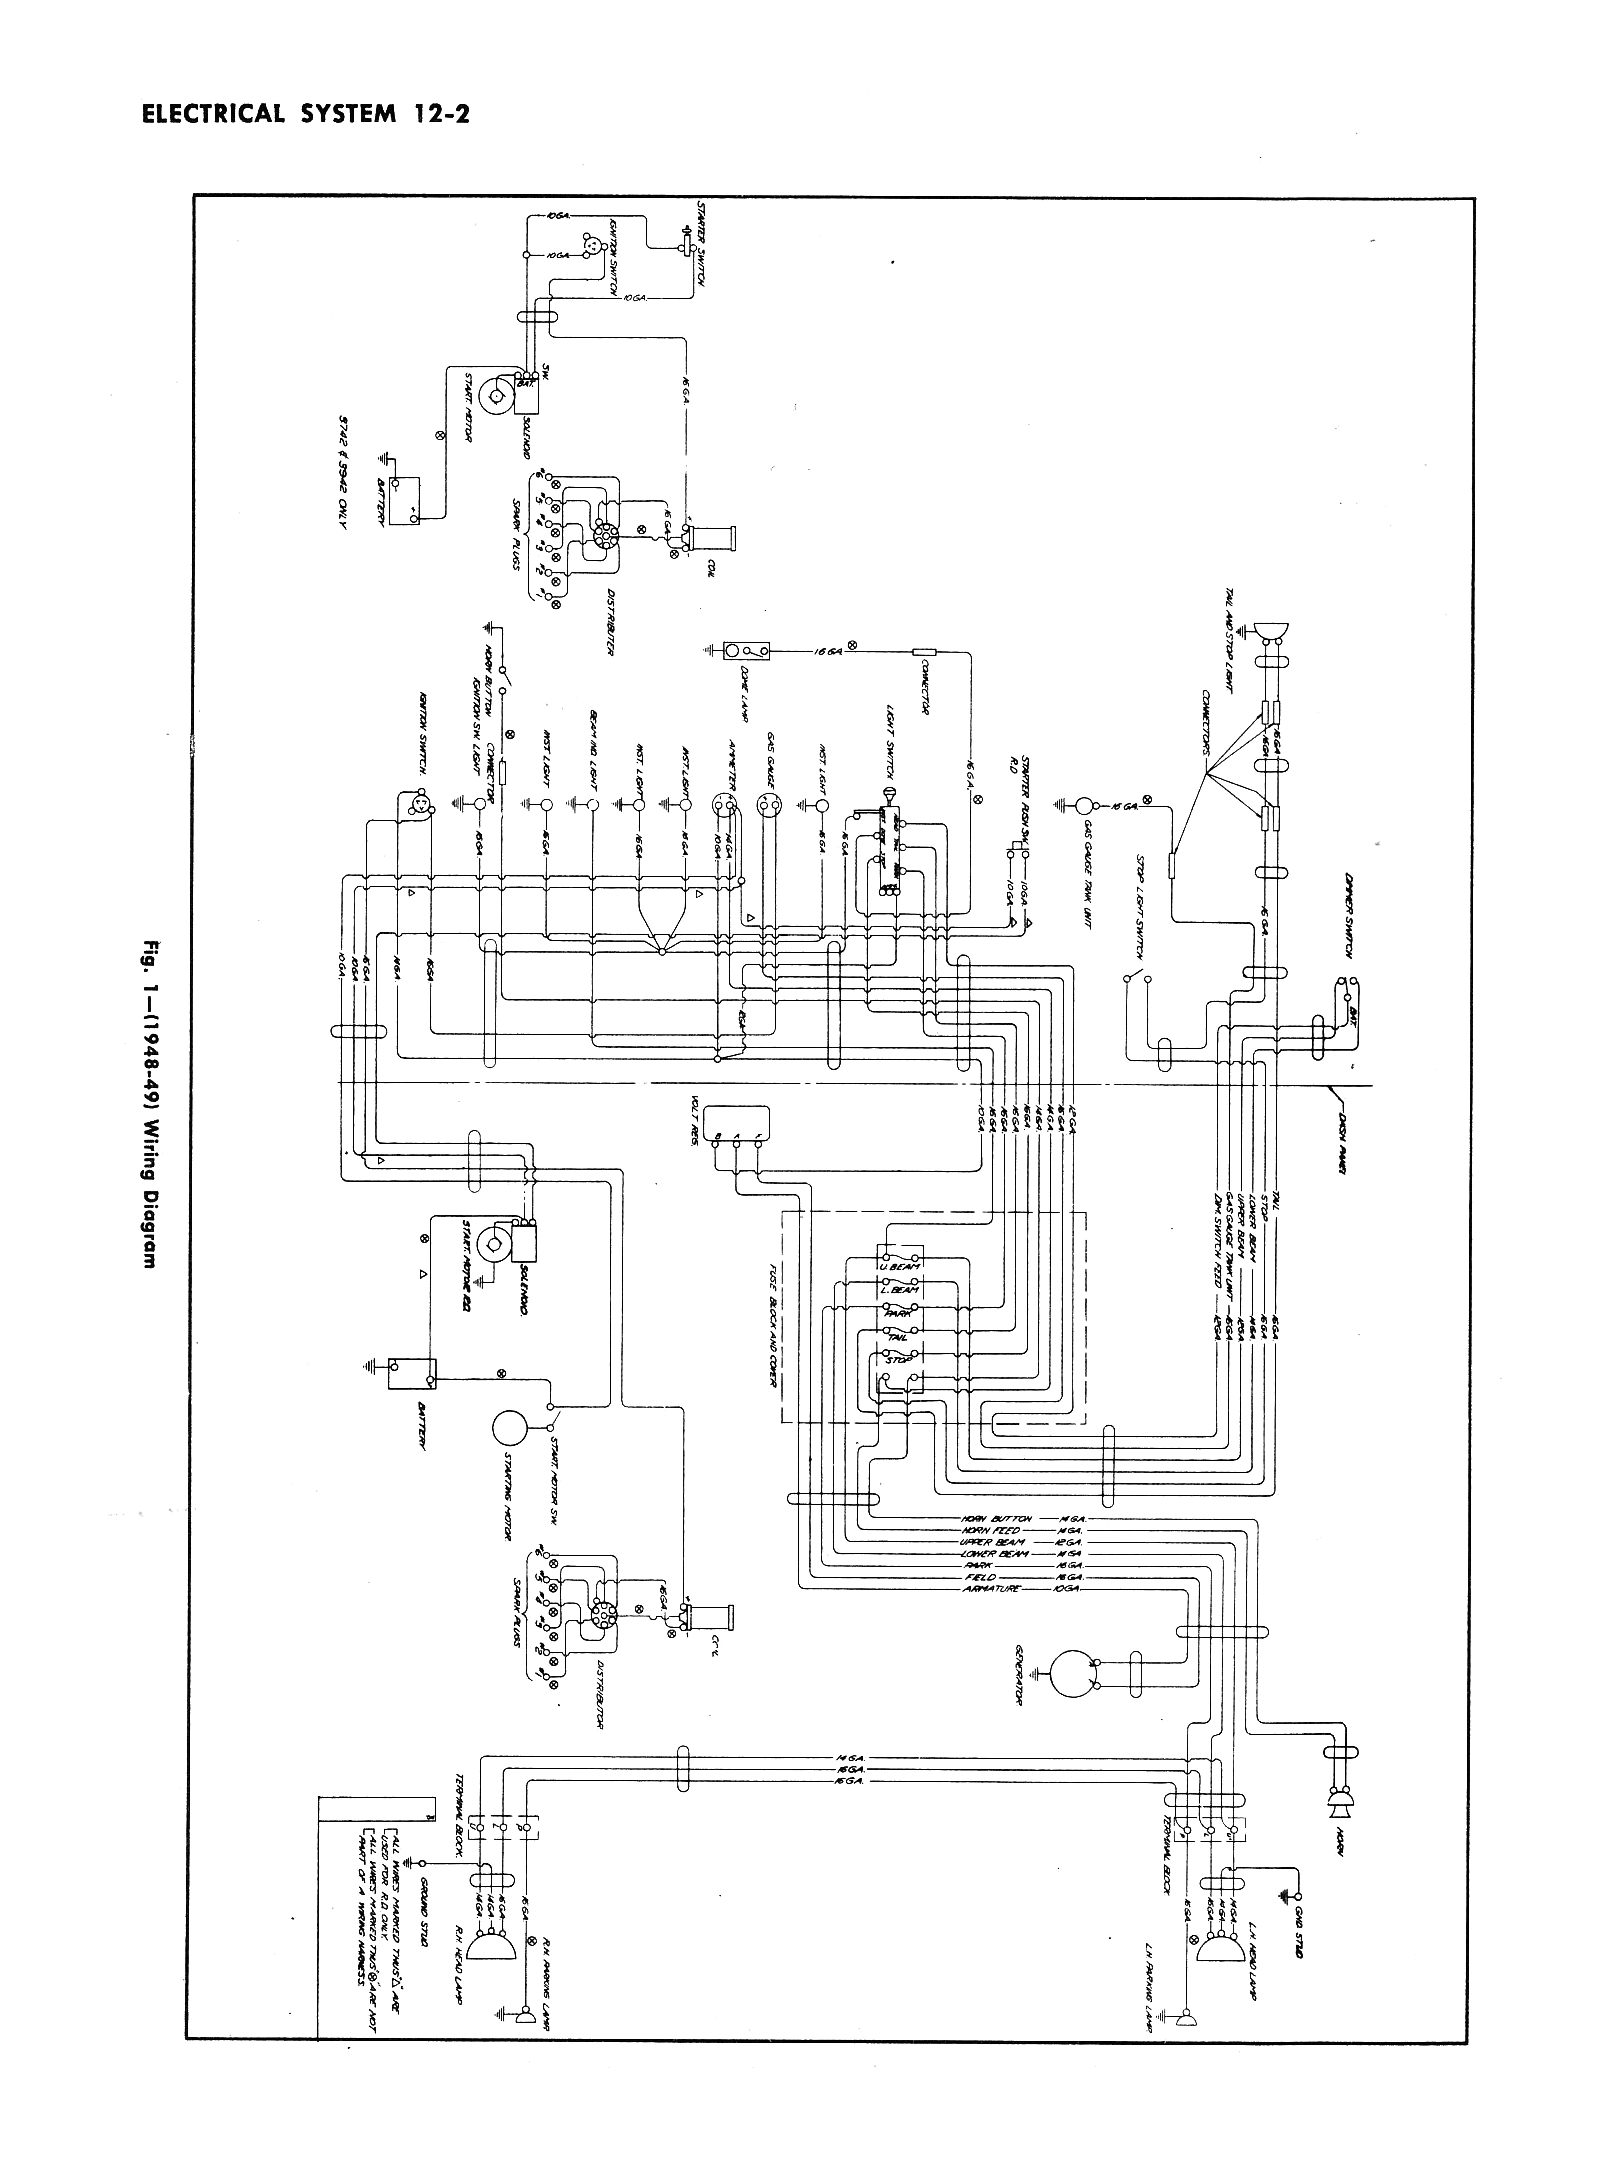 1952 chevy truck headlight wiring diagram